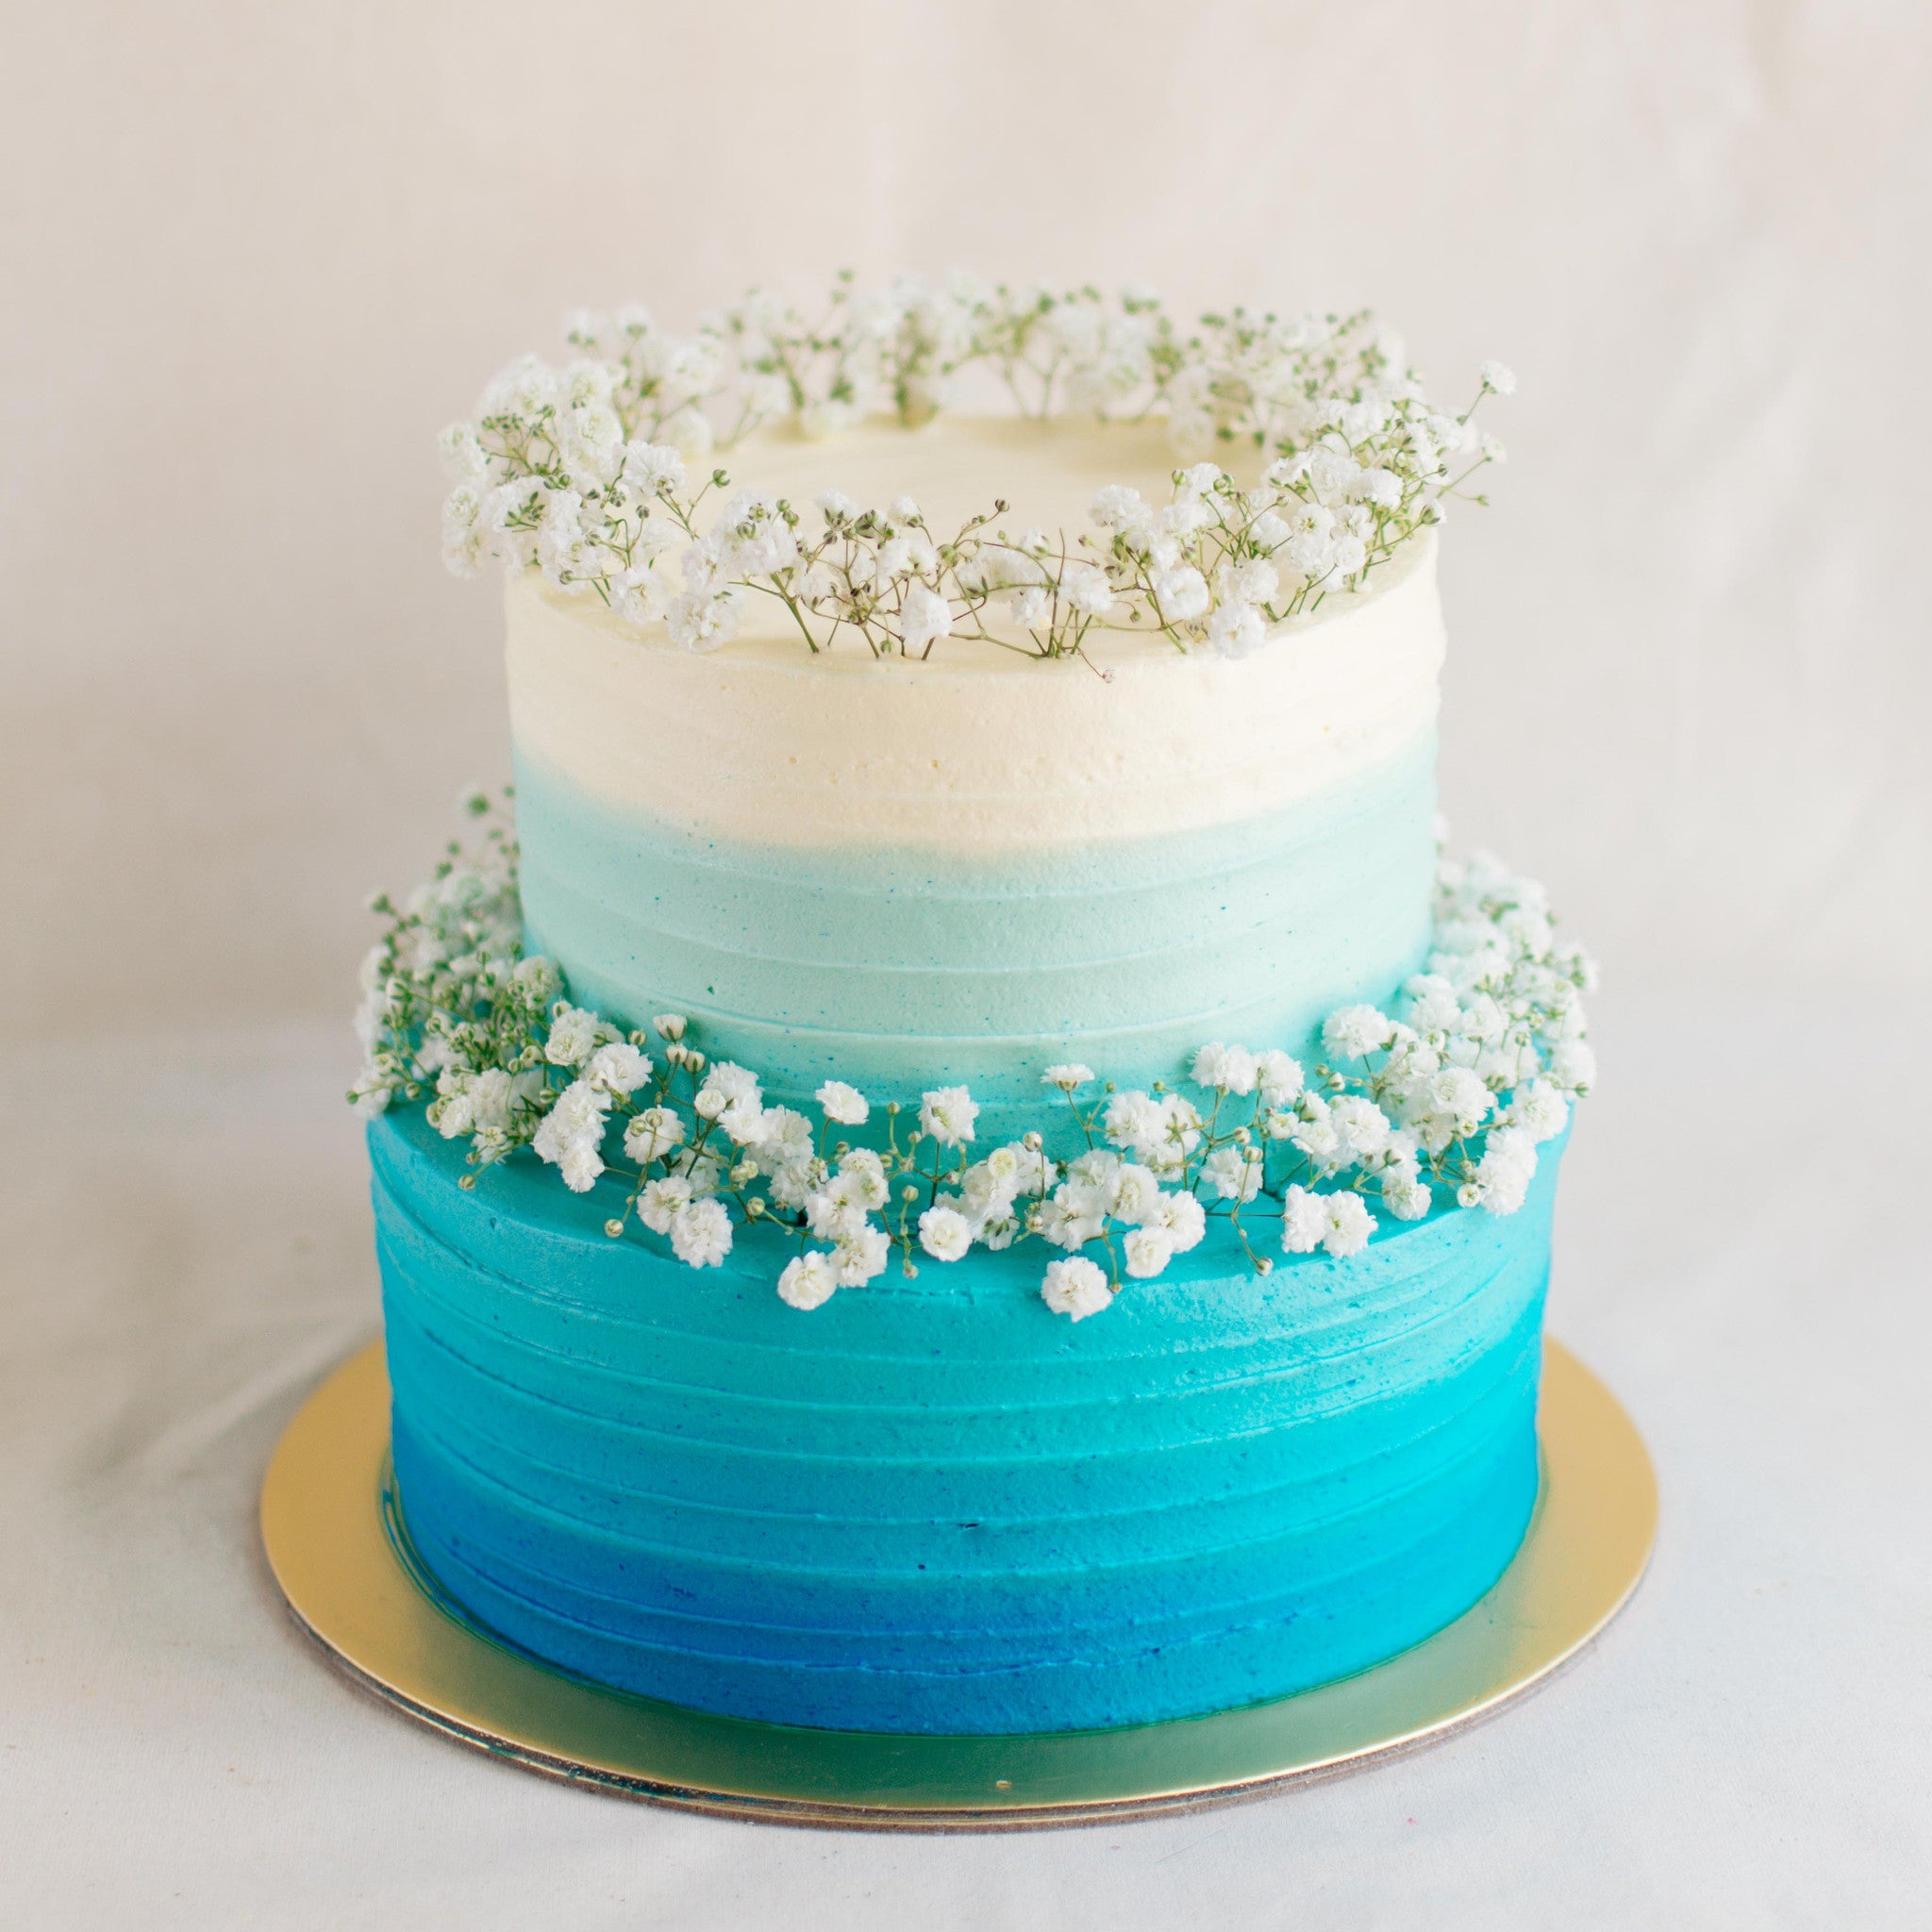 Two-Tier Ombre with Baby's Breath - Custom Bakes by Edith Patisserie